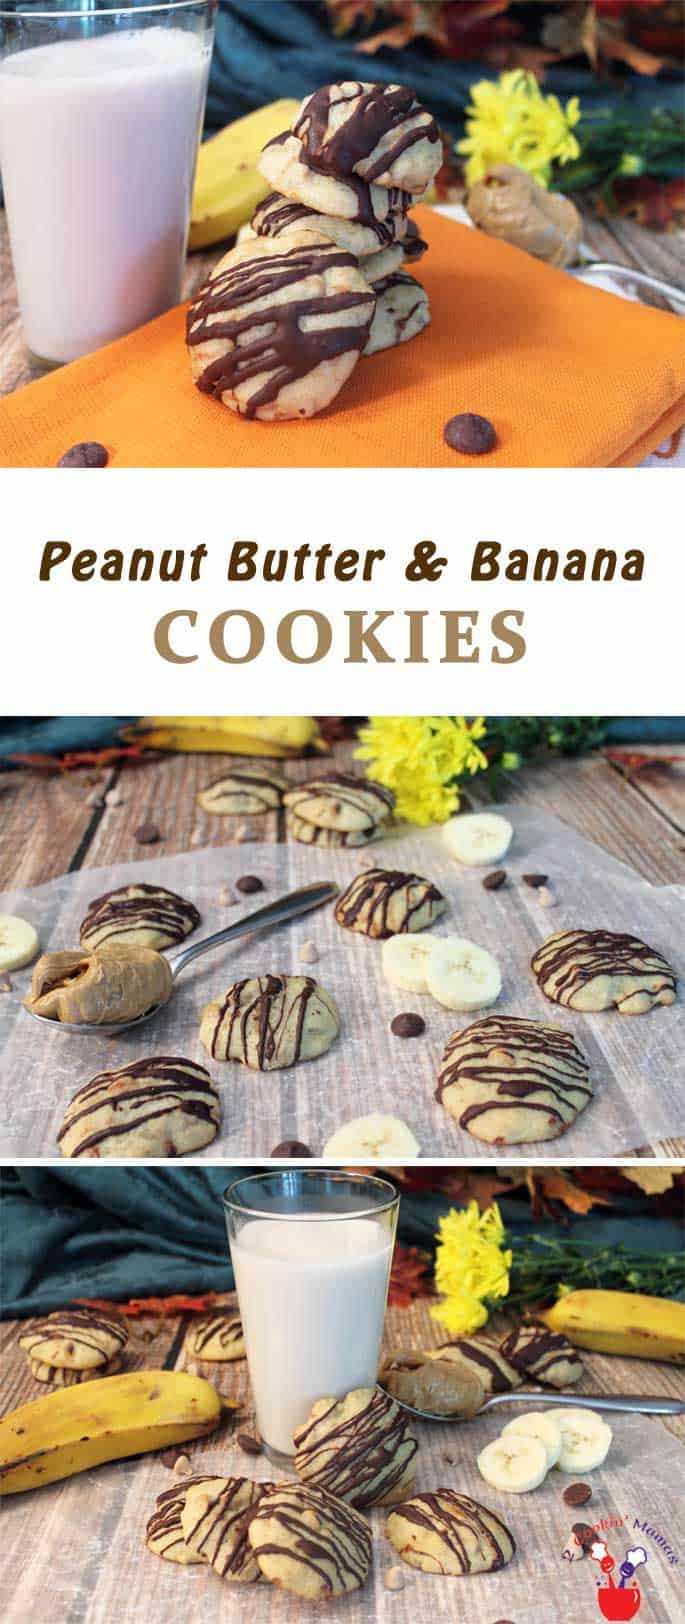 Peanut Butter Banana Cookies main | 2 Cookin Mamas These Peanut Butter and Banana Cookies take the concept of combining peanut butter and banana to a whole new level. Rich banana bread-like cookies are chock full of peanut butter chips then drizzled with dark chocolate - oh mercy, you won't want to stop eating them! #recipe #dessert